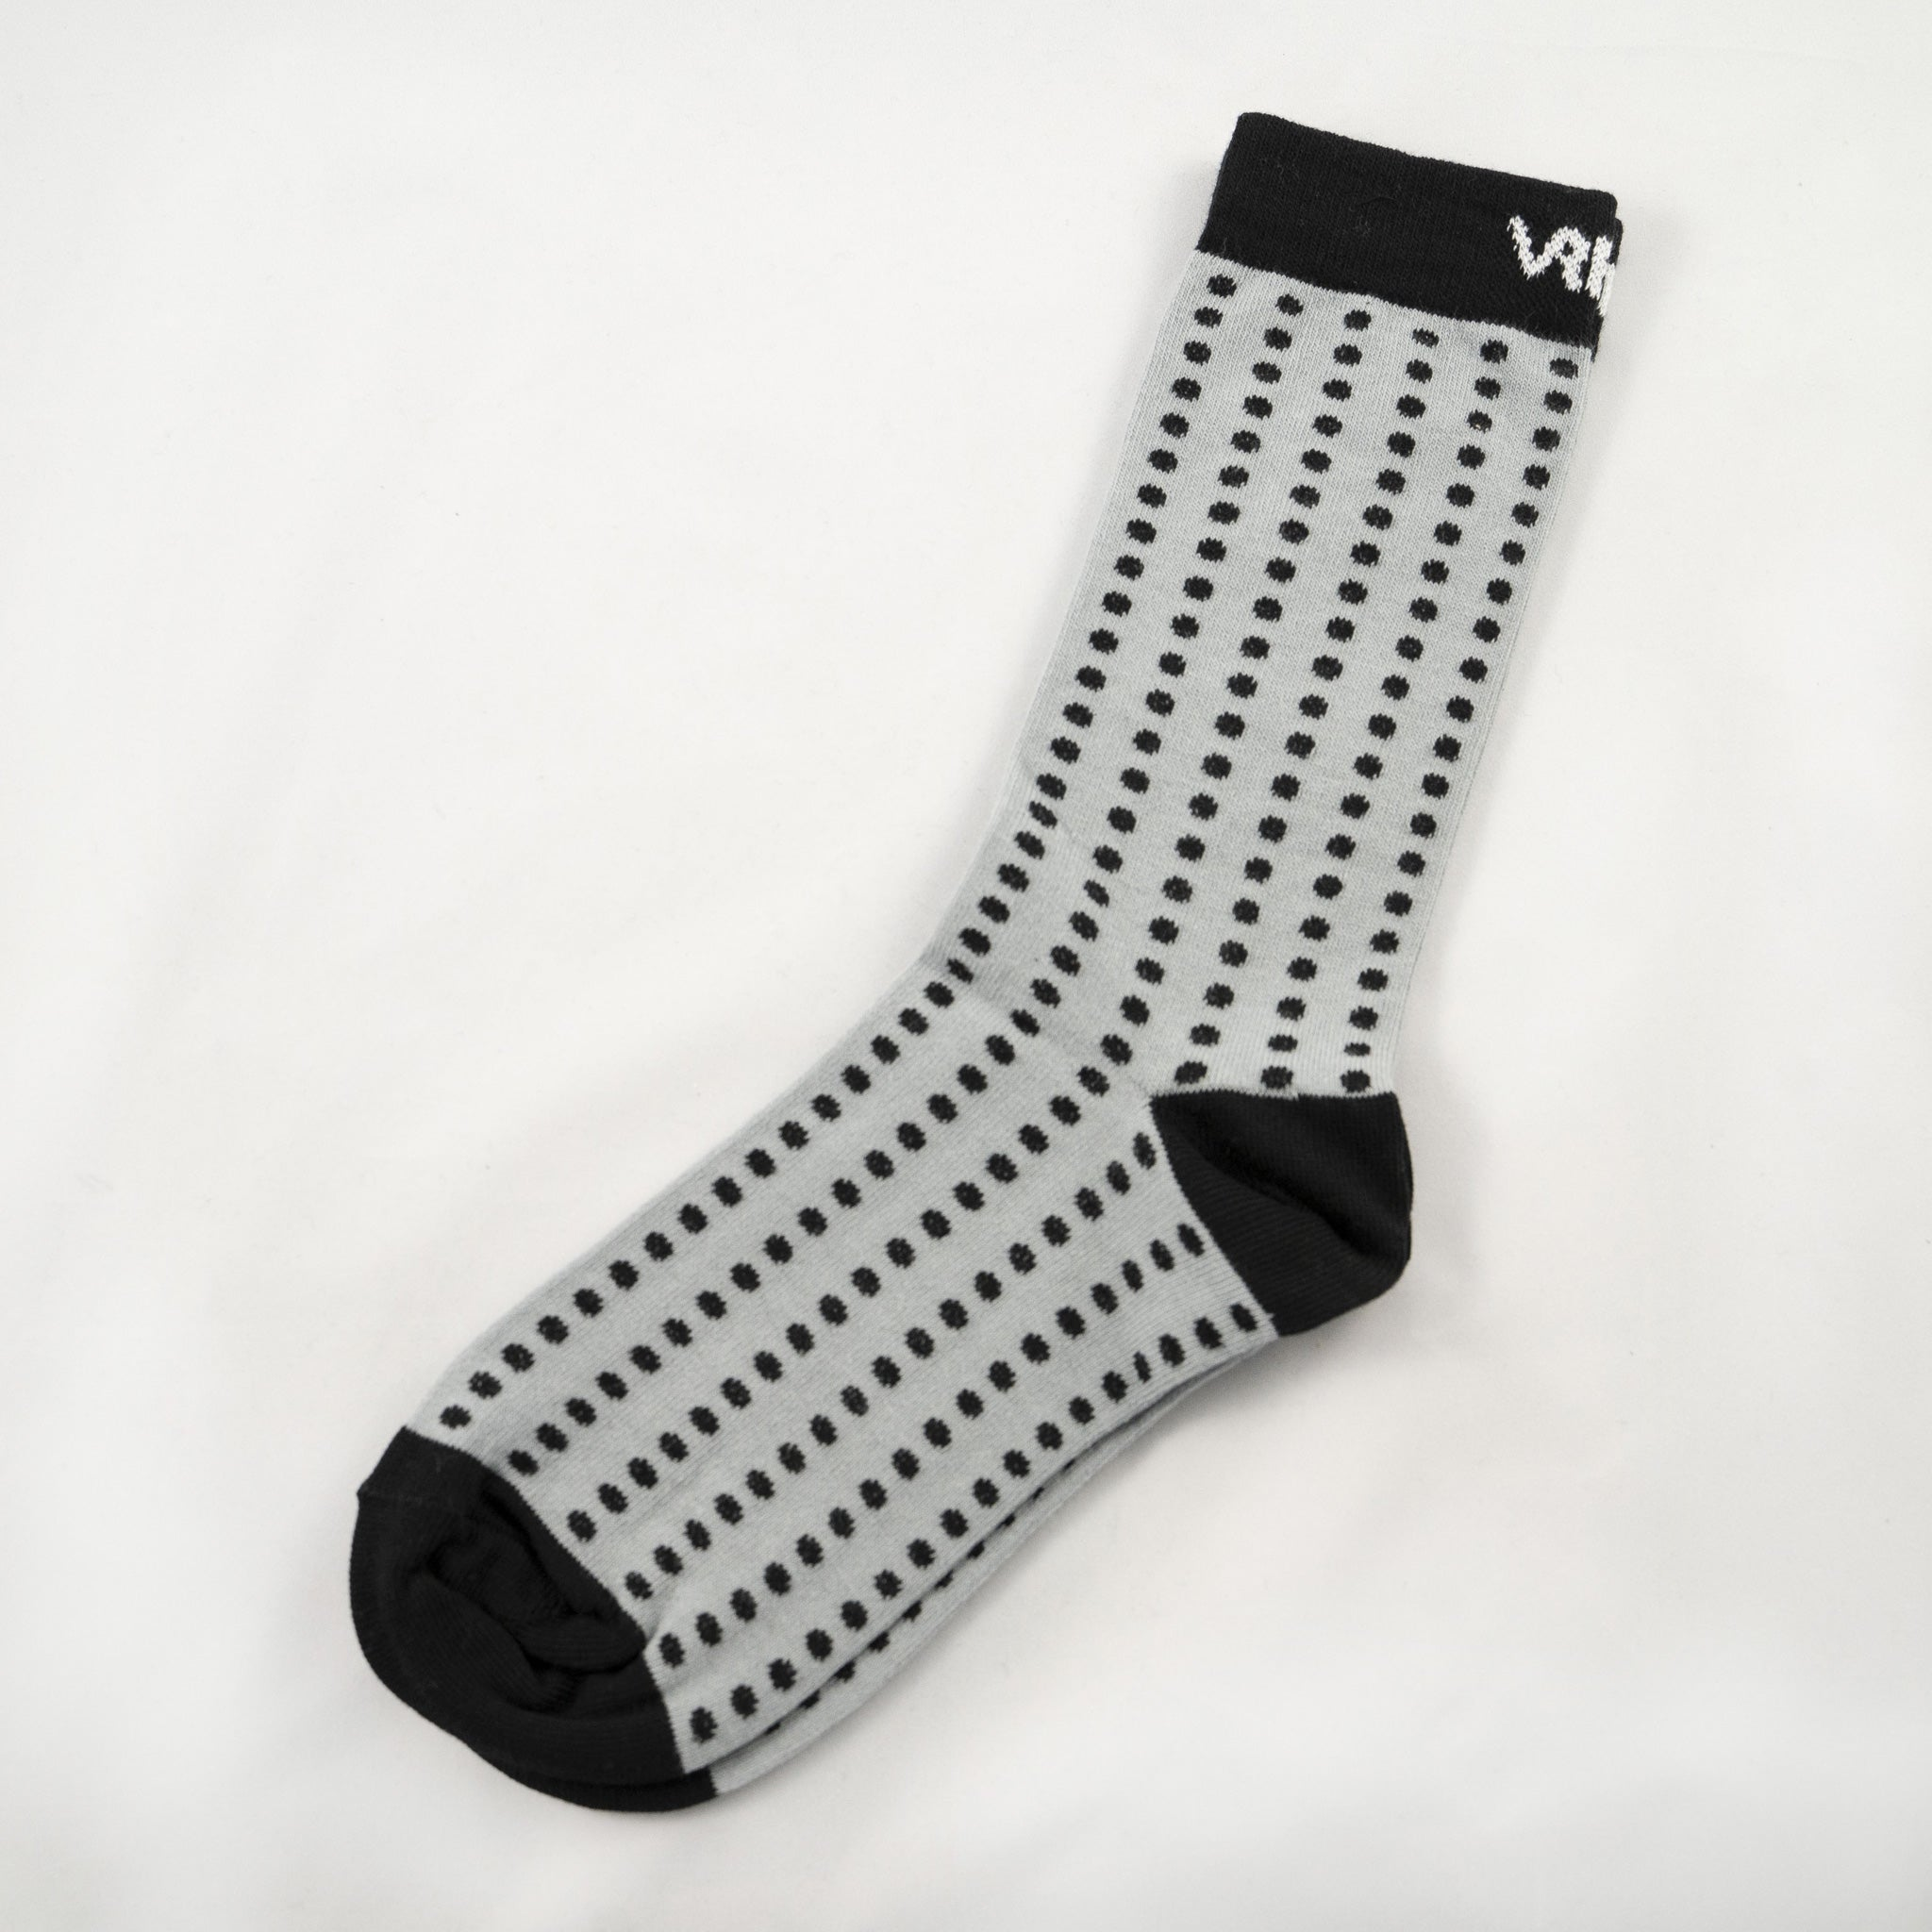 Single Socks blk/gry Dots